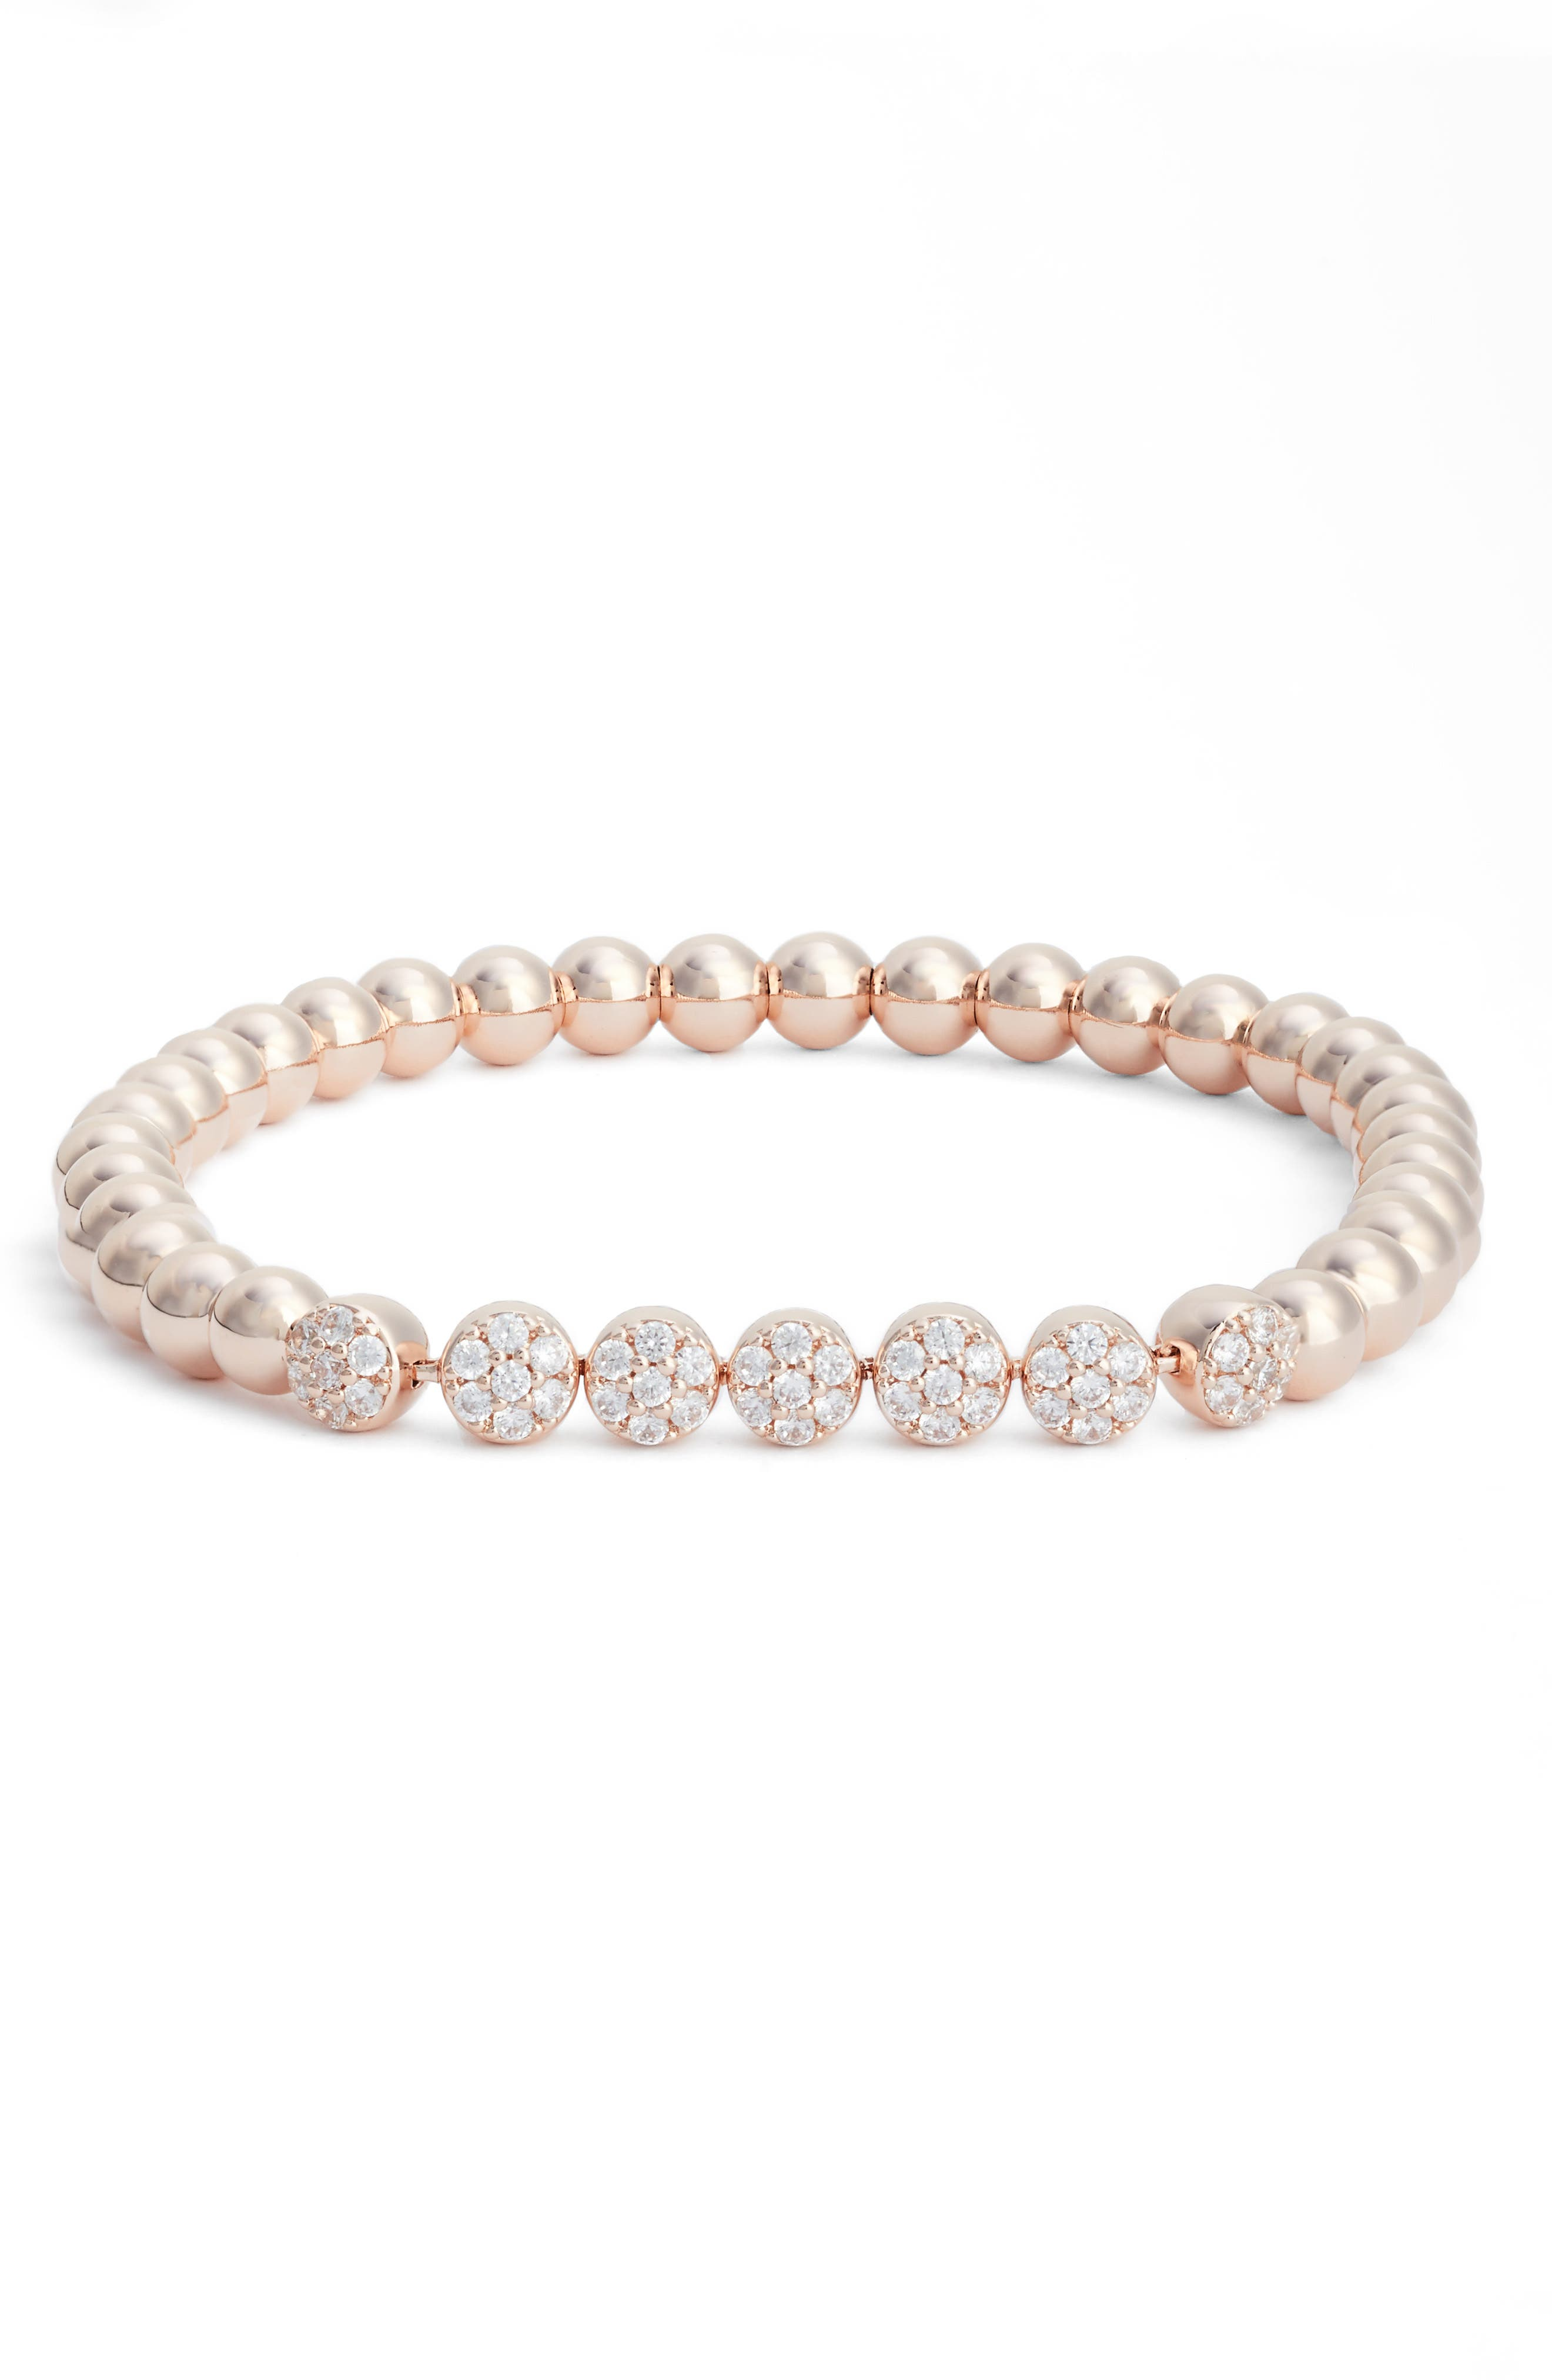 Cubic Zirconia Bracelet,                             Main thumbnail 2, color,